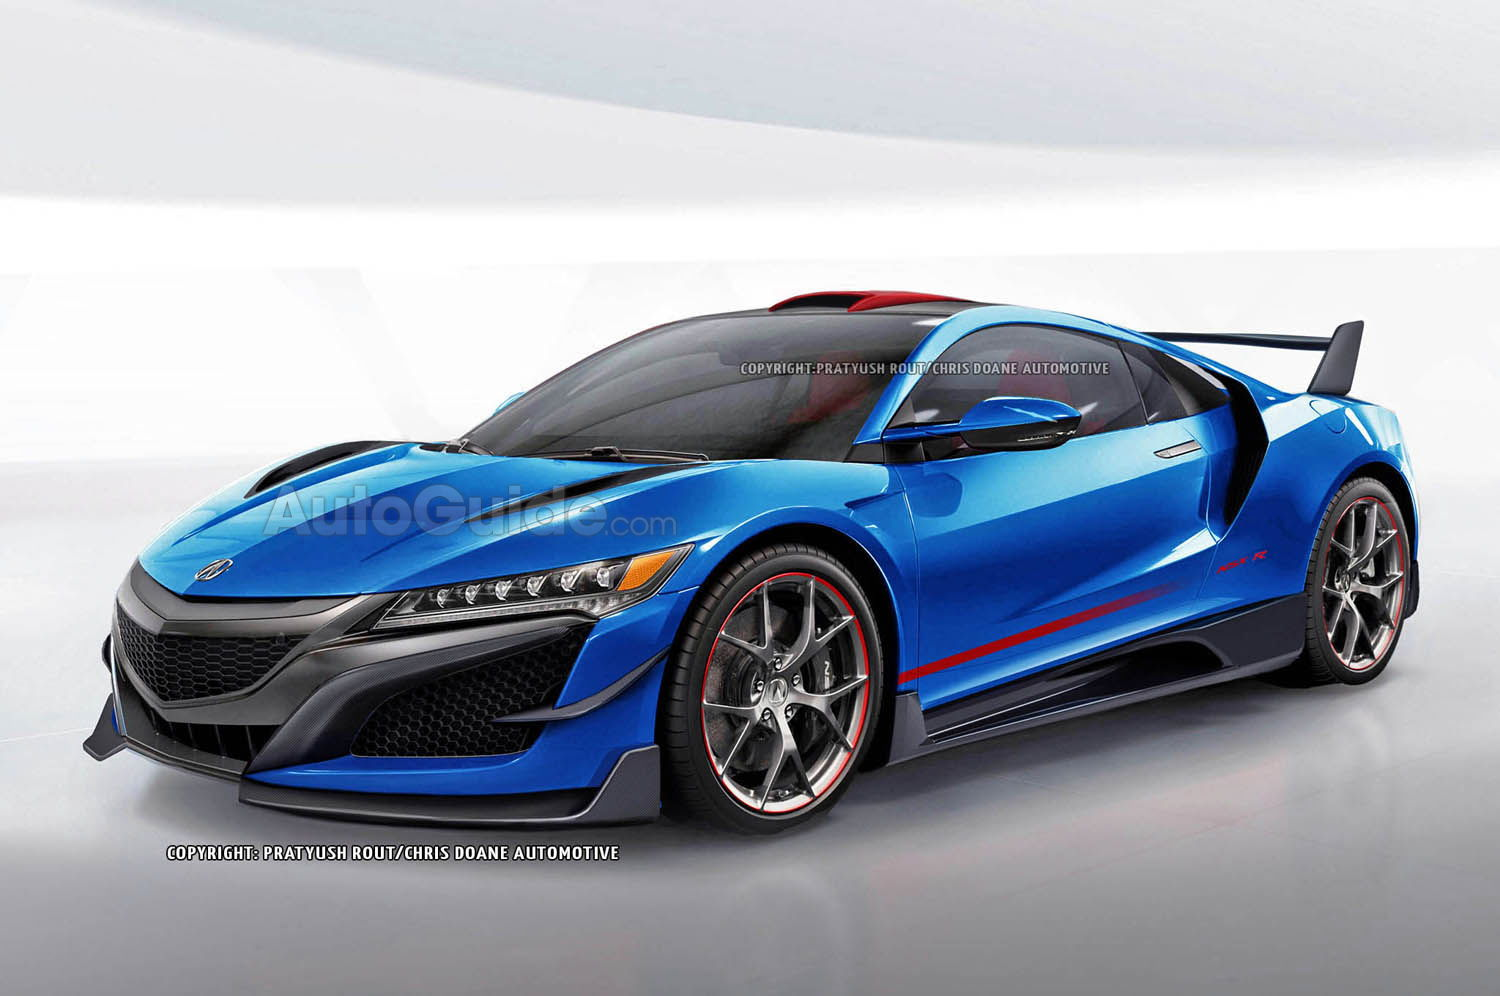 More extreme Acura NSX coming in 2018? - AcuraZine - Acura Enthusiast Community